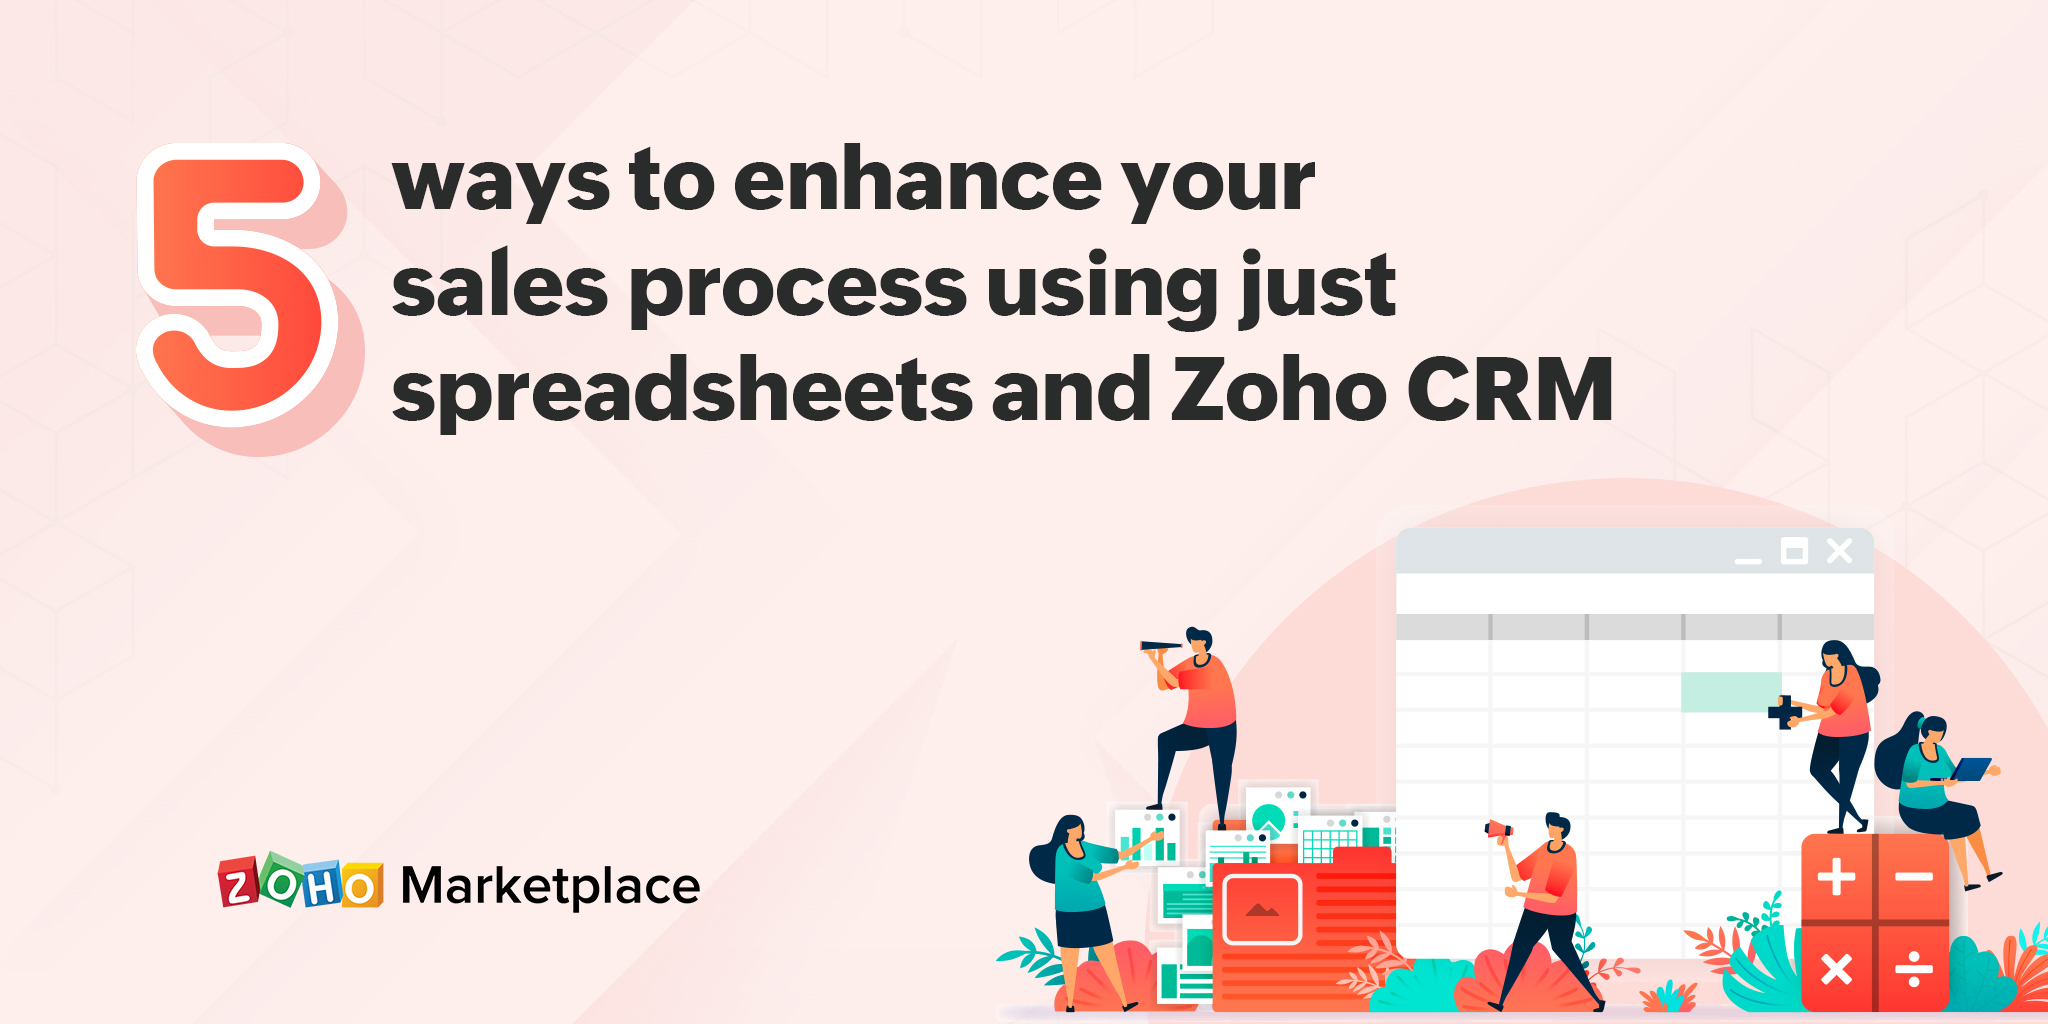 ProTips: 5 ways to enhance your sales process using just spreadsheets and Zoho CRM